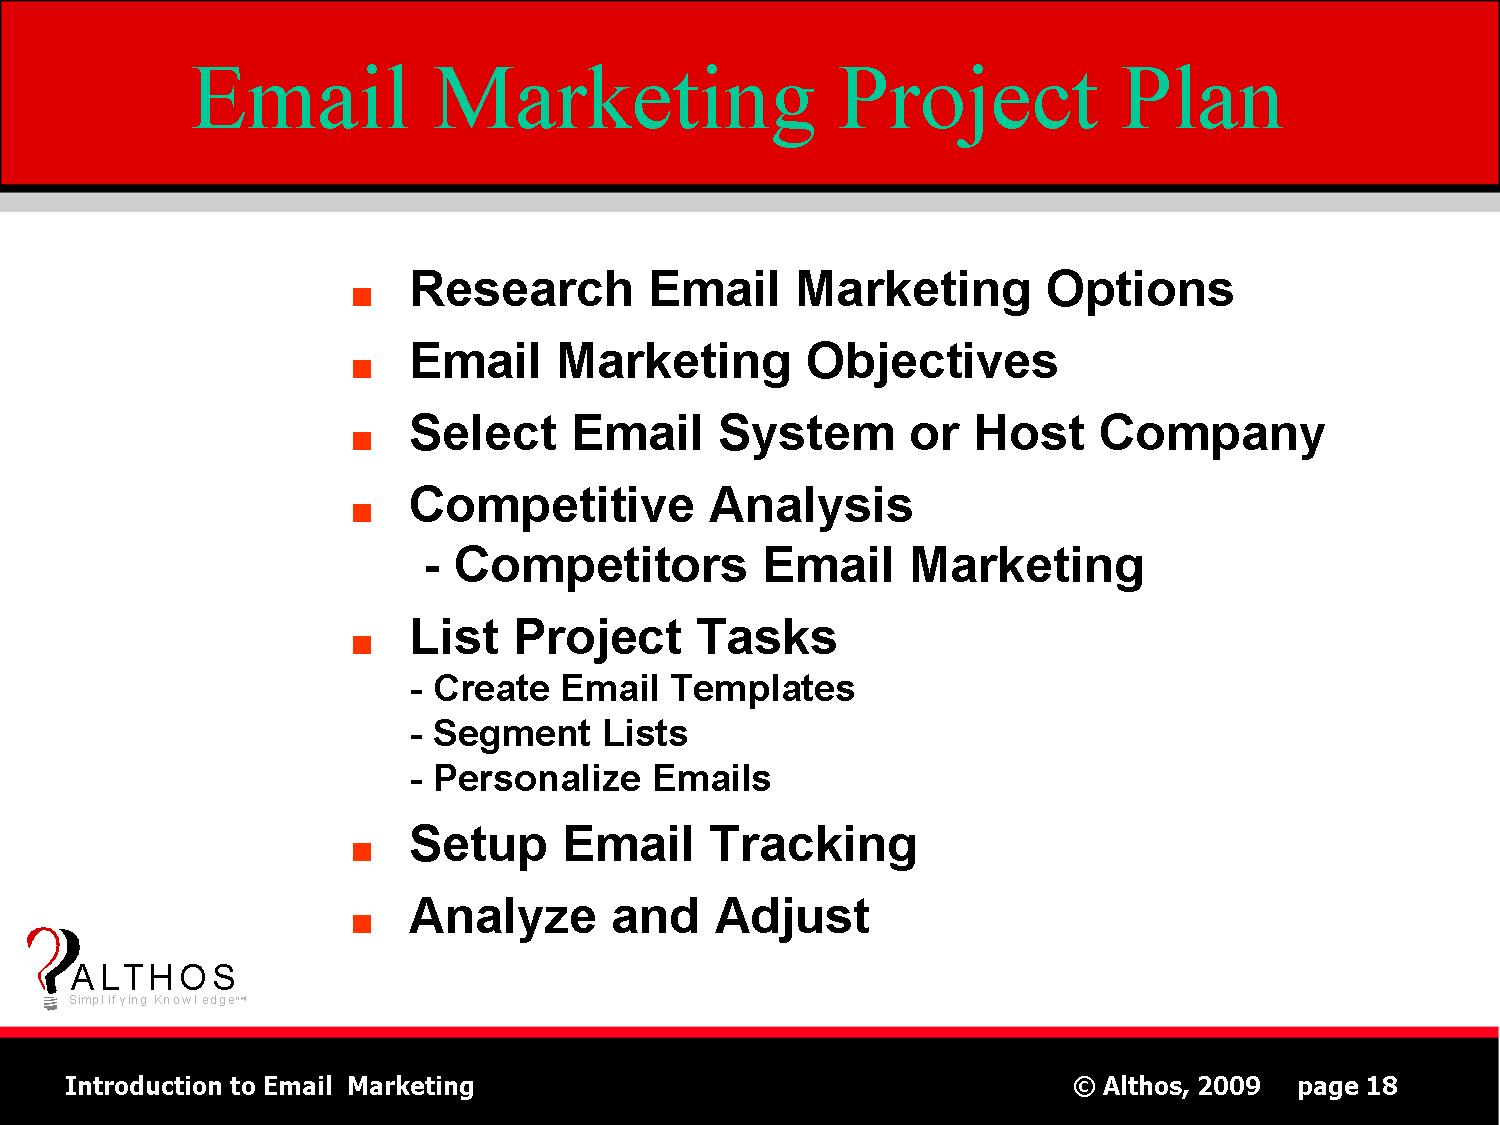 Email-tutorial-Marketing-Project-Plan.jpg